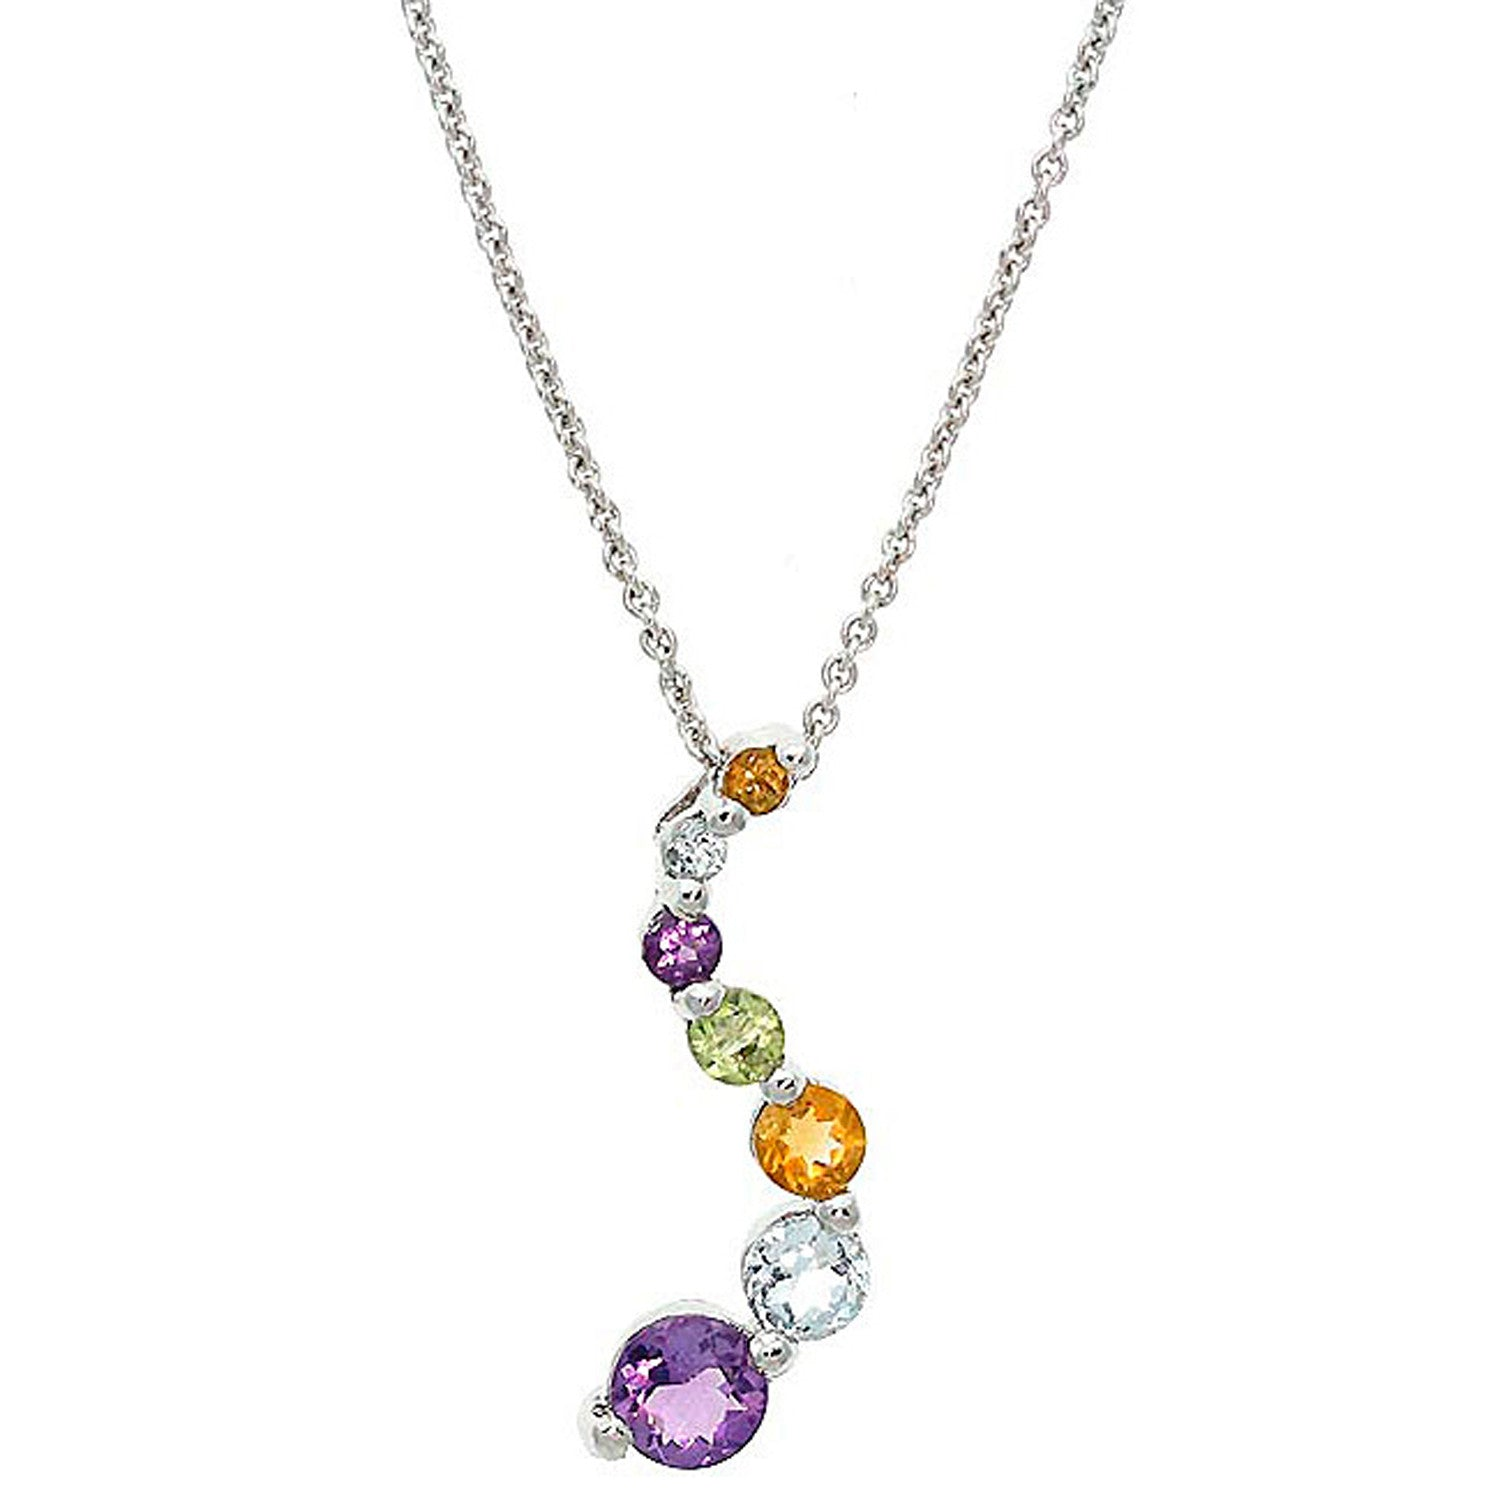 Gemstone 18 Inch Cable Chained Journey Necklace - Silver / Multi